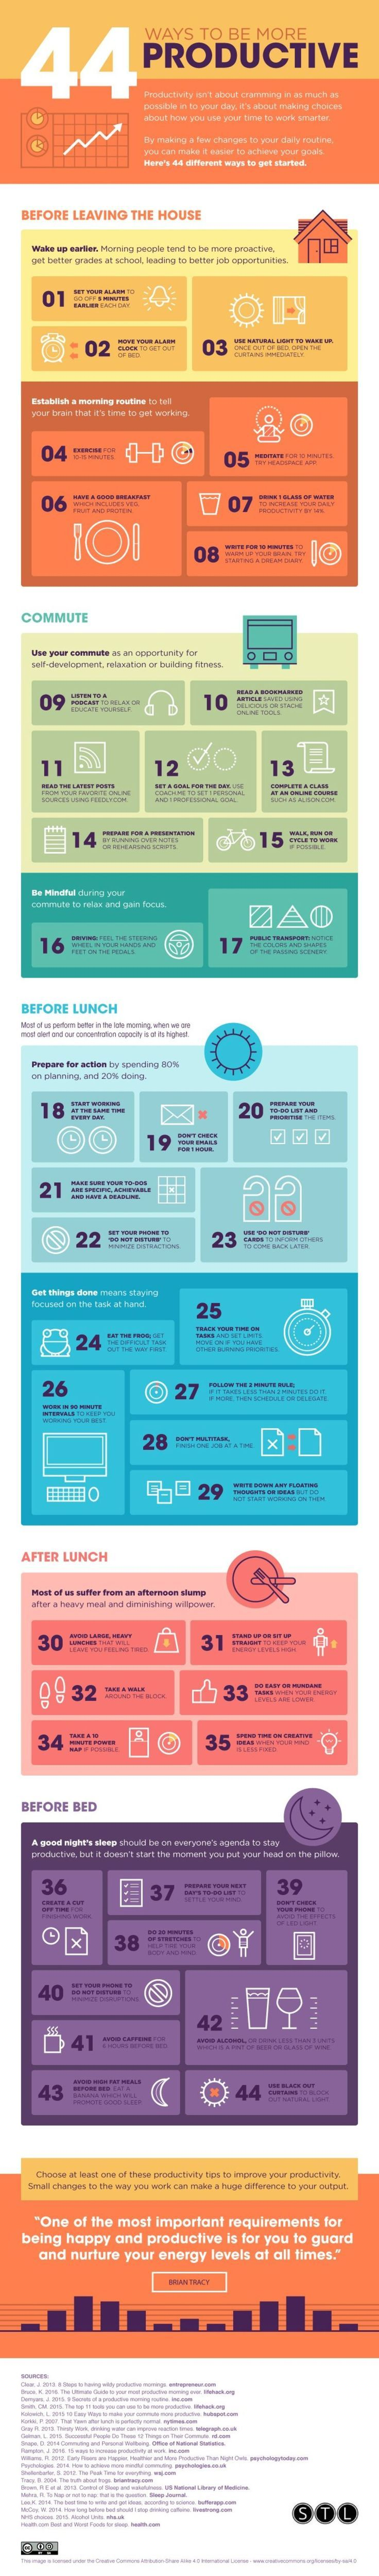 44 Ways To Be More Productive - #infographic